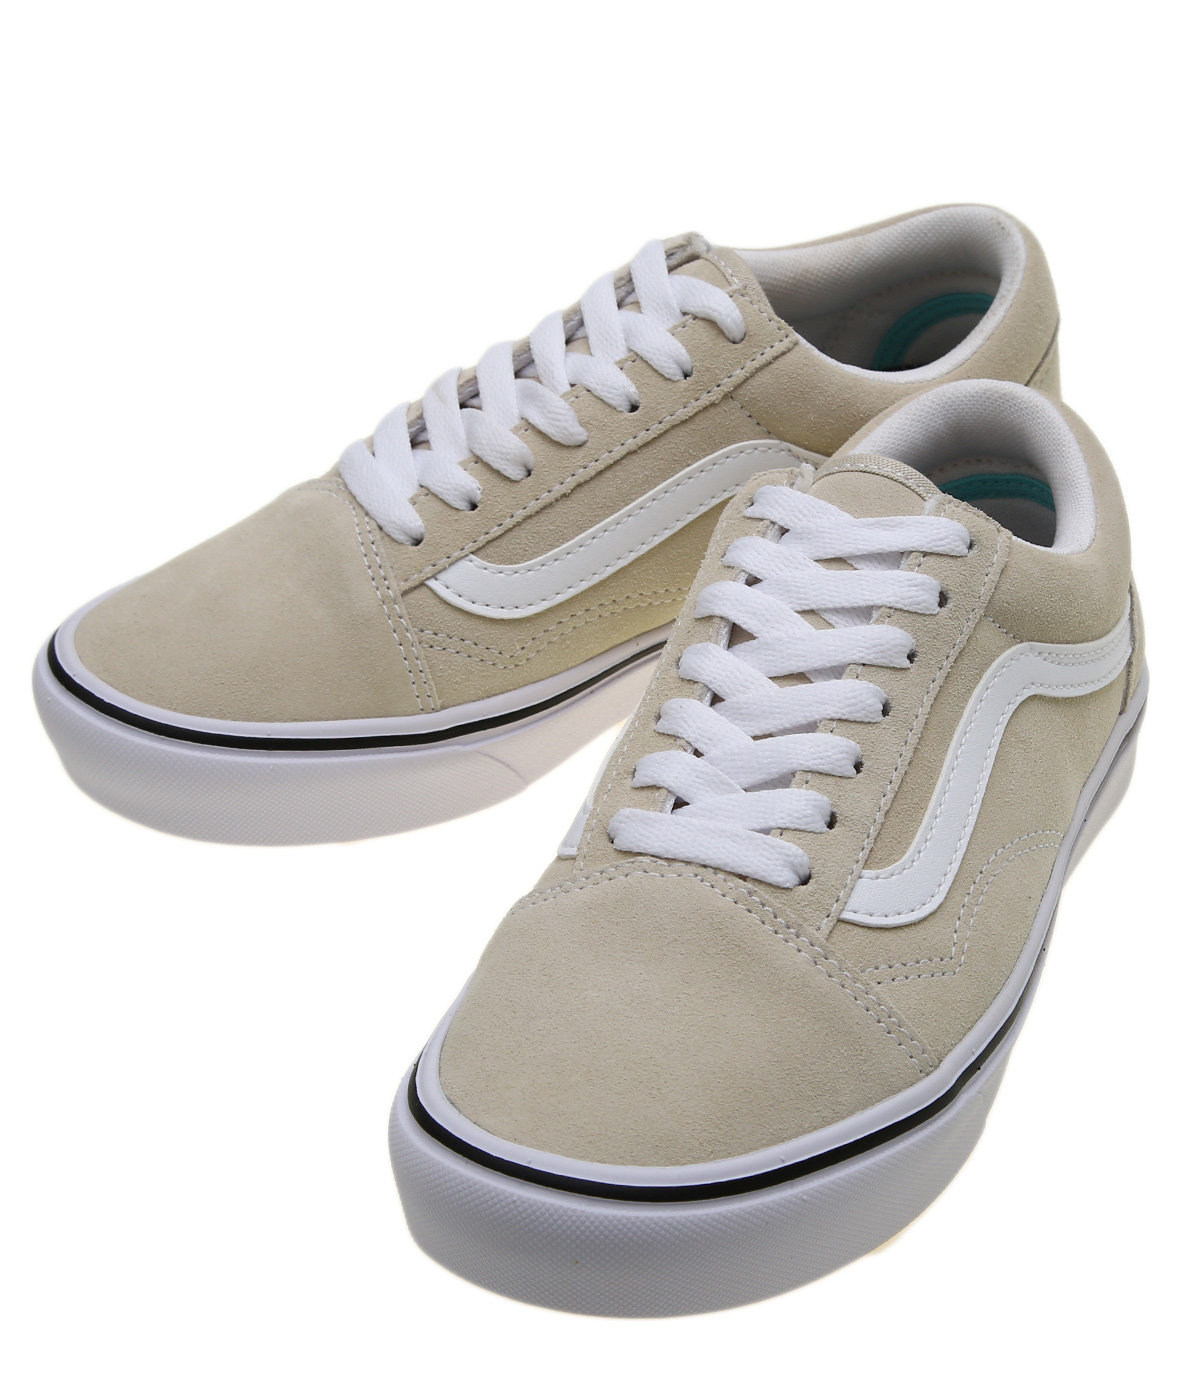 【レディース】Comfycush Old Skool